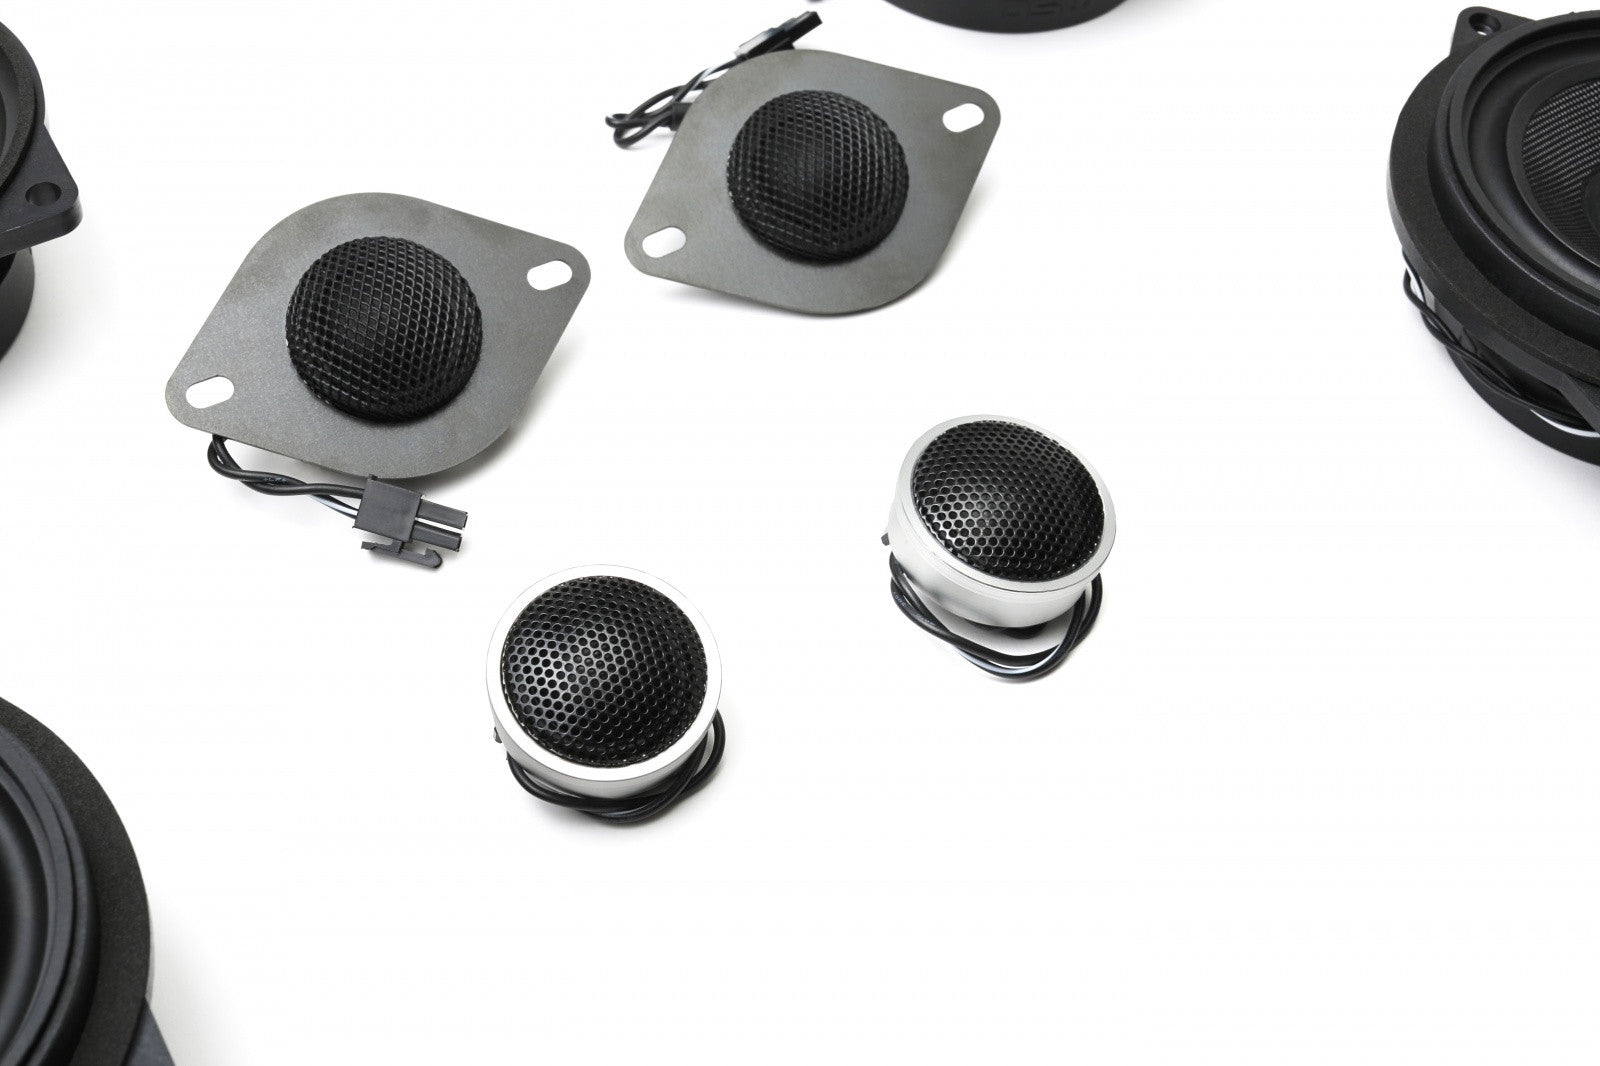 Stage One BMW Speaker Upgrade for E90 Sedan with Standard Hi-Fi